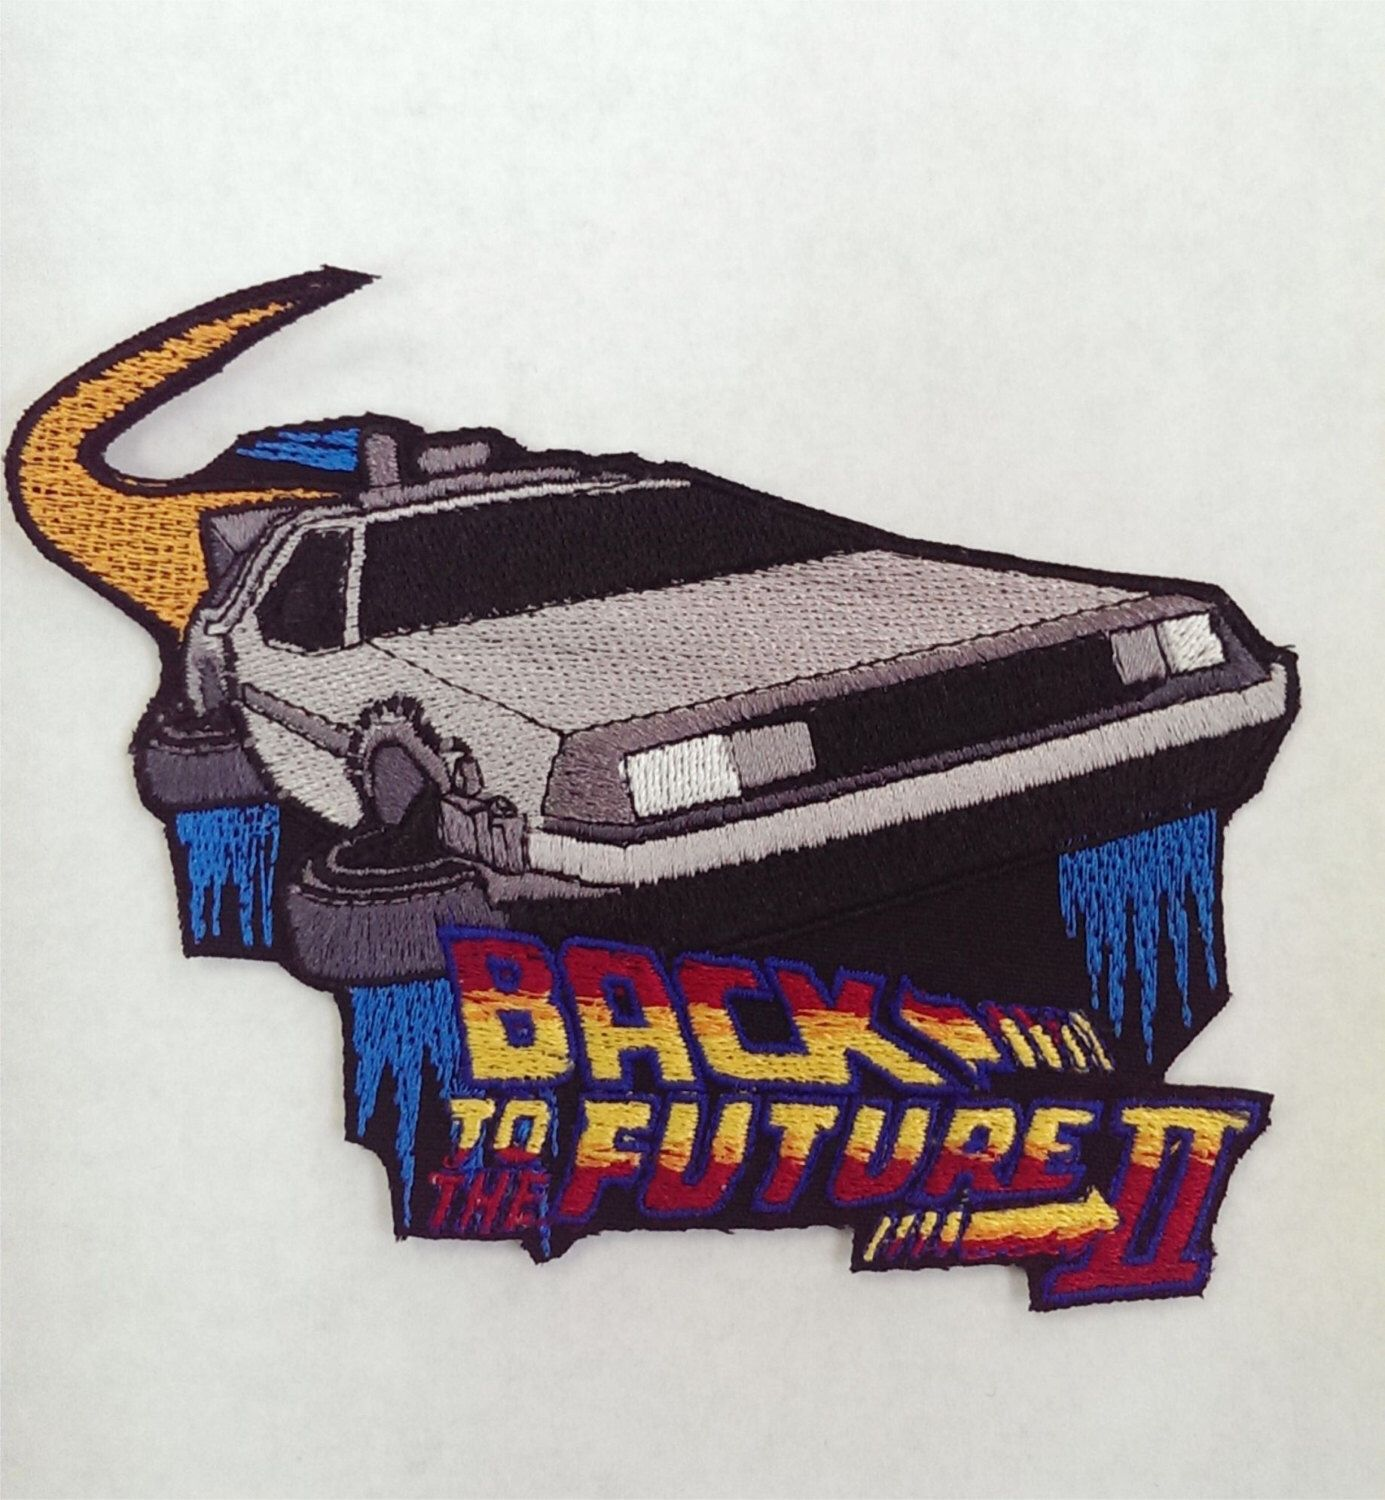 Reproductions Back to the Future Outatime License Plate Enamel Collector Pin Entertainment Memorabilia